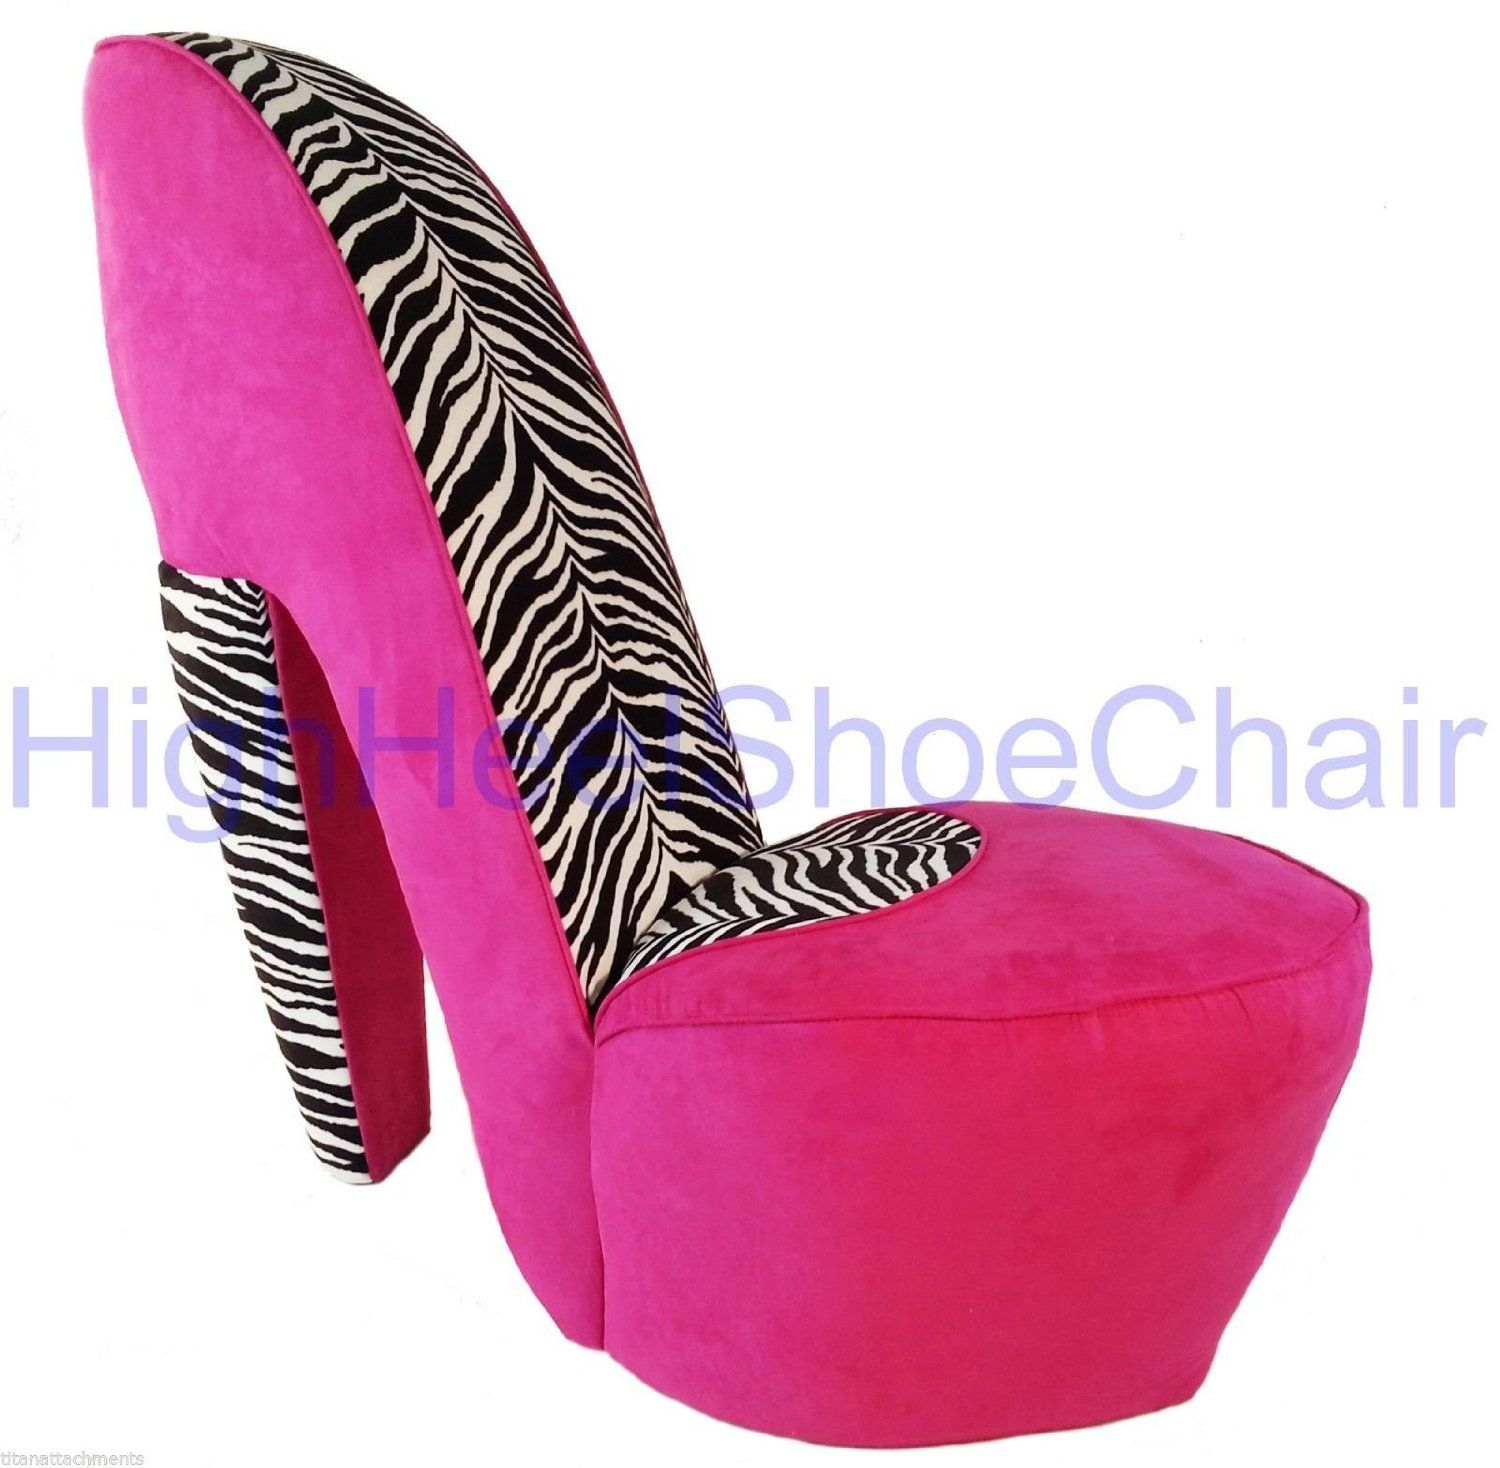 Stiletto Chair Amazon Zebra And Hot Pink High Heel Shoe Chair Pink Chair